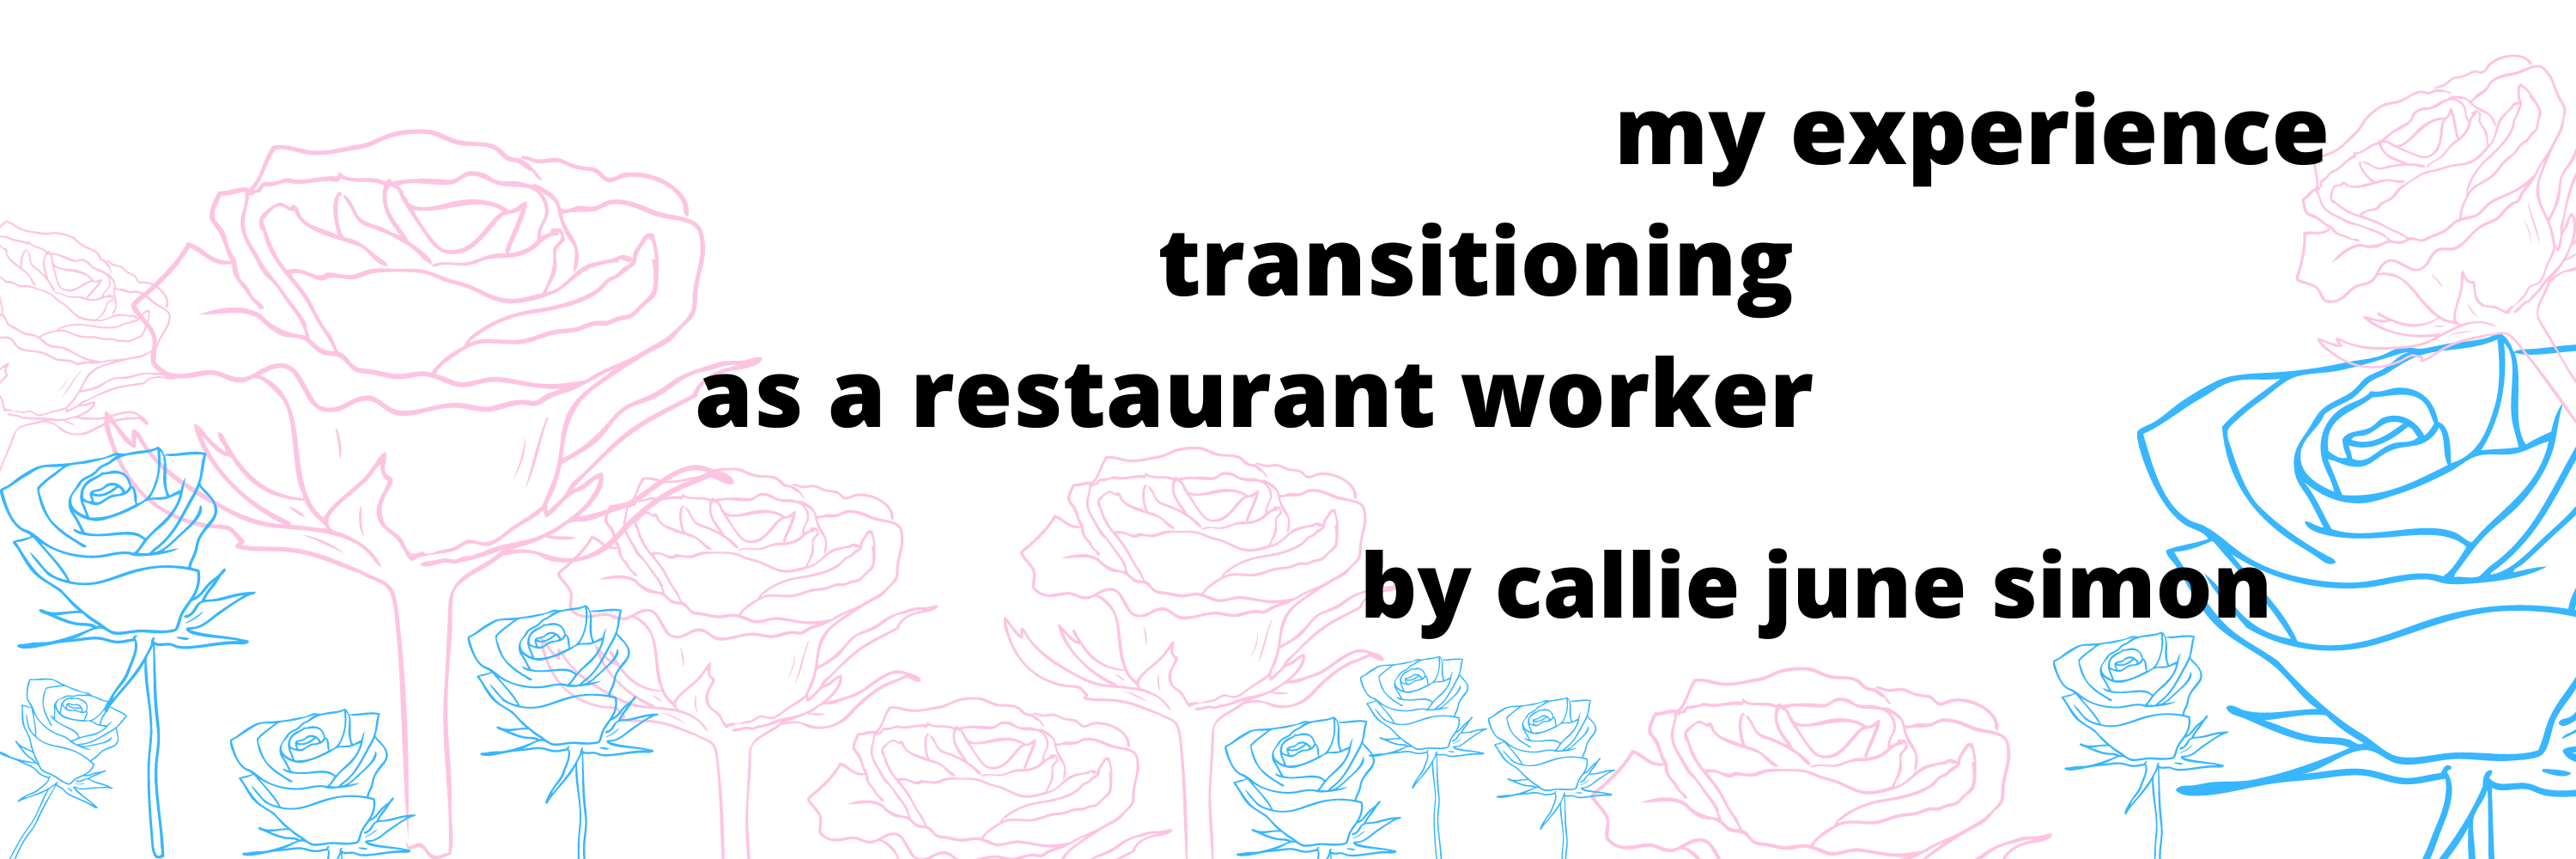 """a field of pink and blue flowers in the background, black text reads """"my experience transitioning as a restaurant worker by callie june simon"""""""